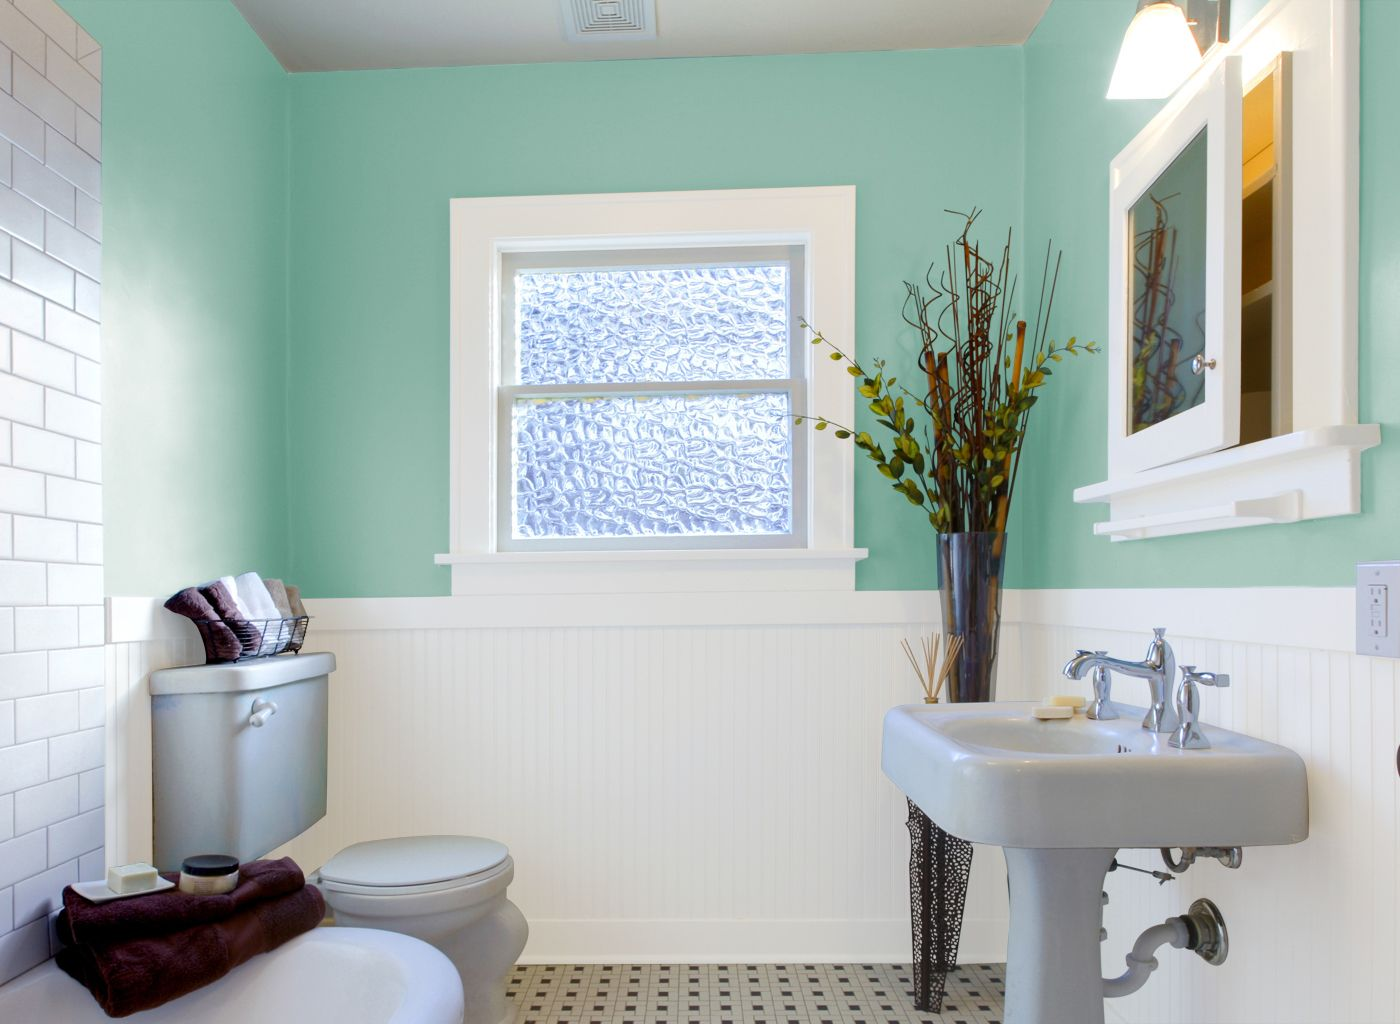 Glidden capri teal paint colors pinterest blue for Green color bathroom design